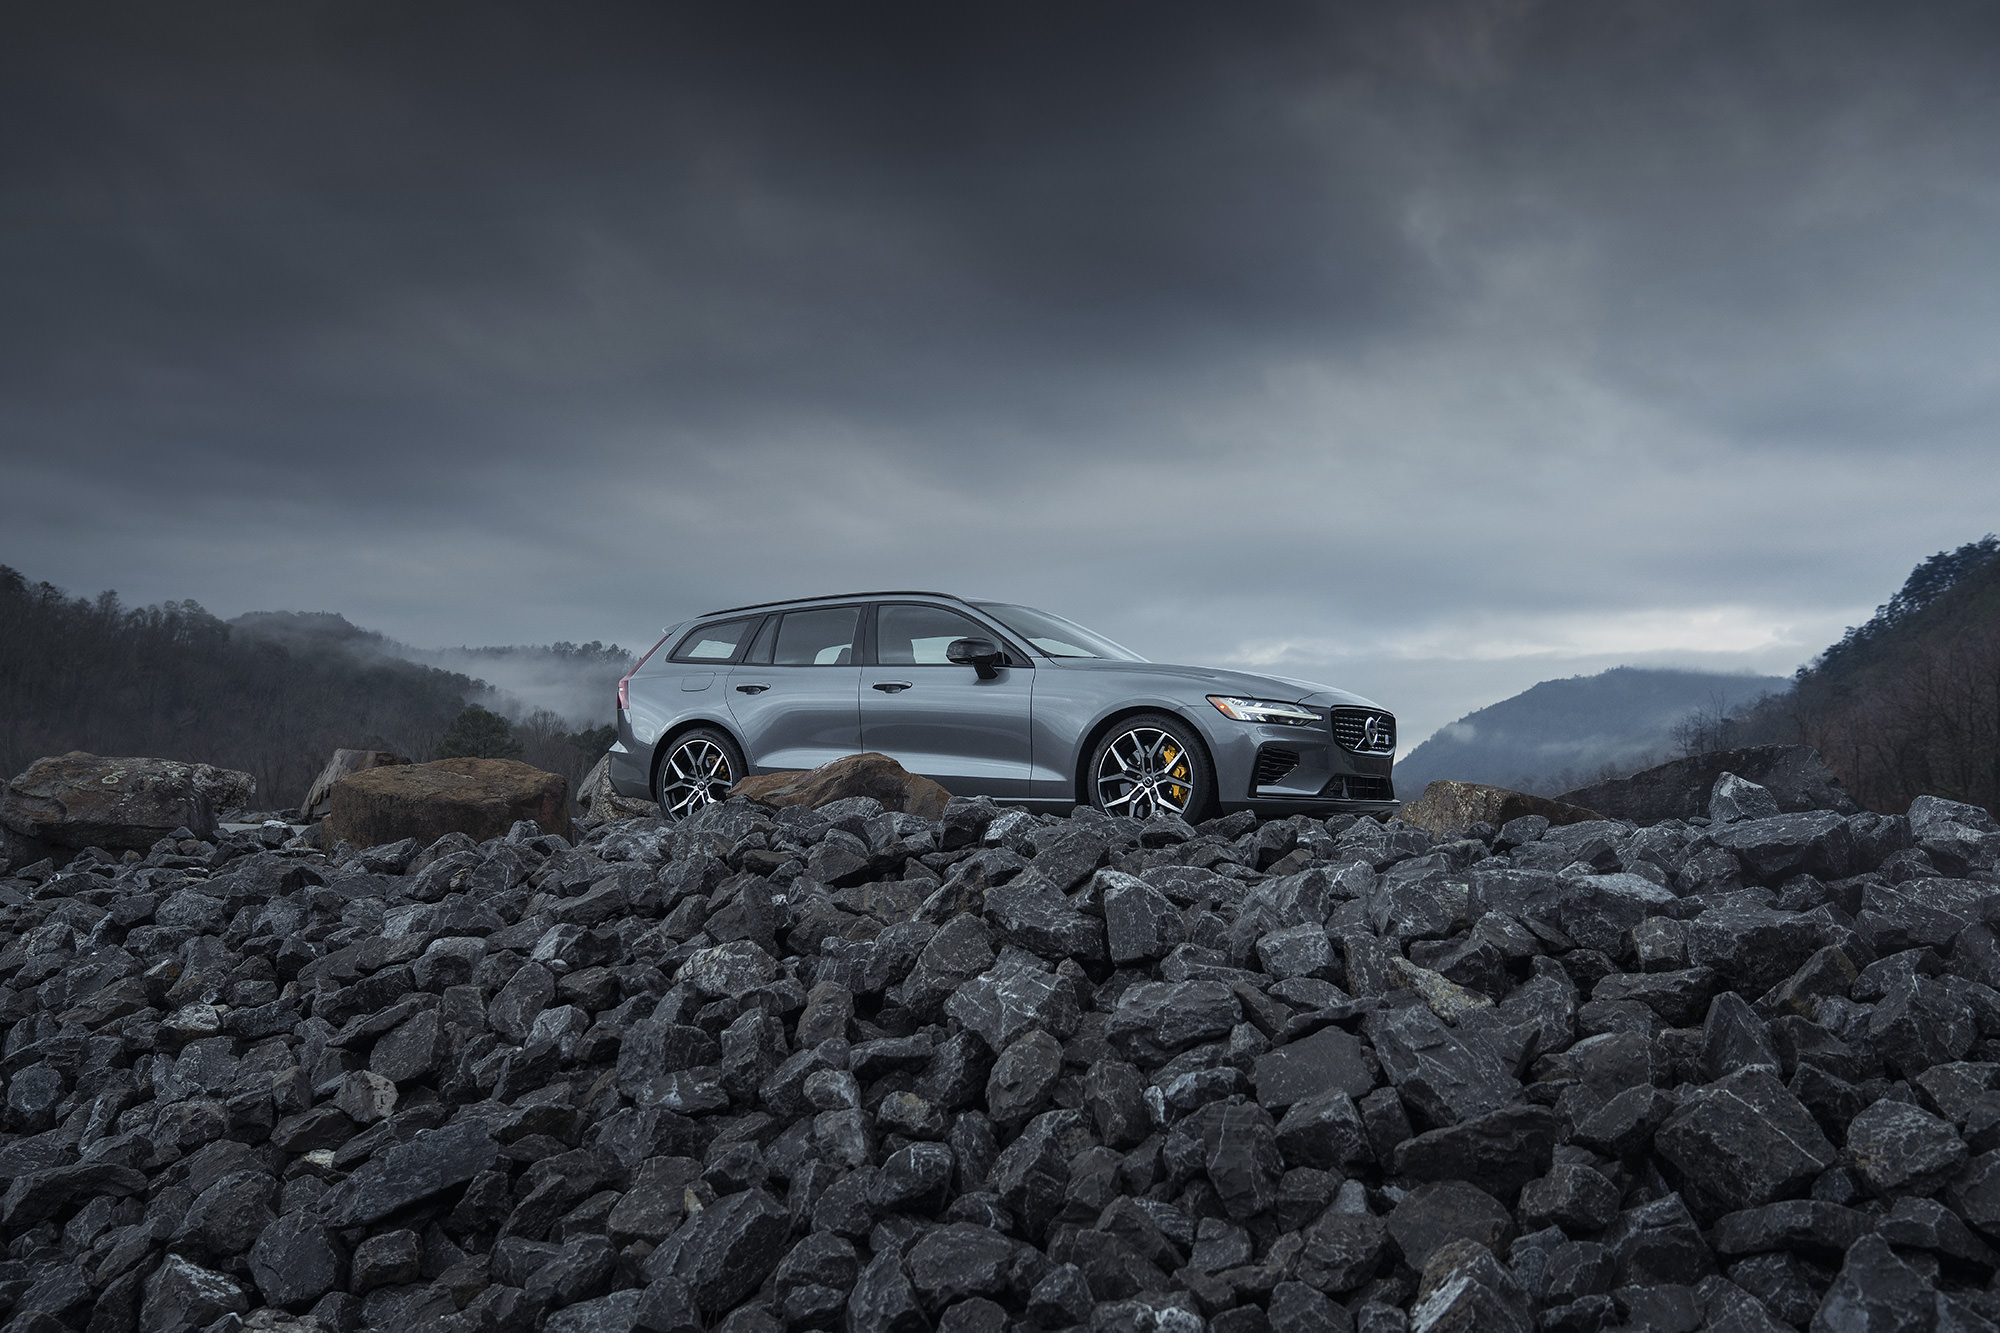 Volvo V60 T8 Polestar photographed in the mountains for Road and Track Magazine